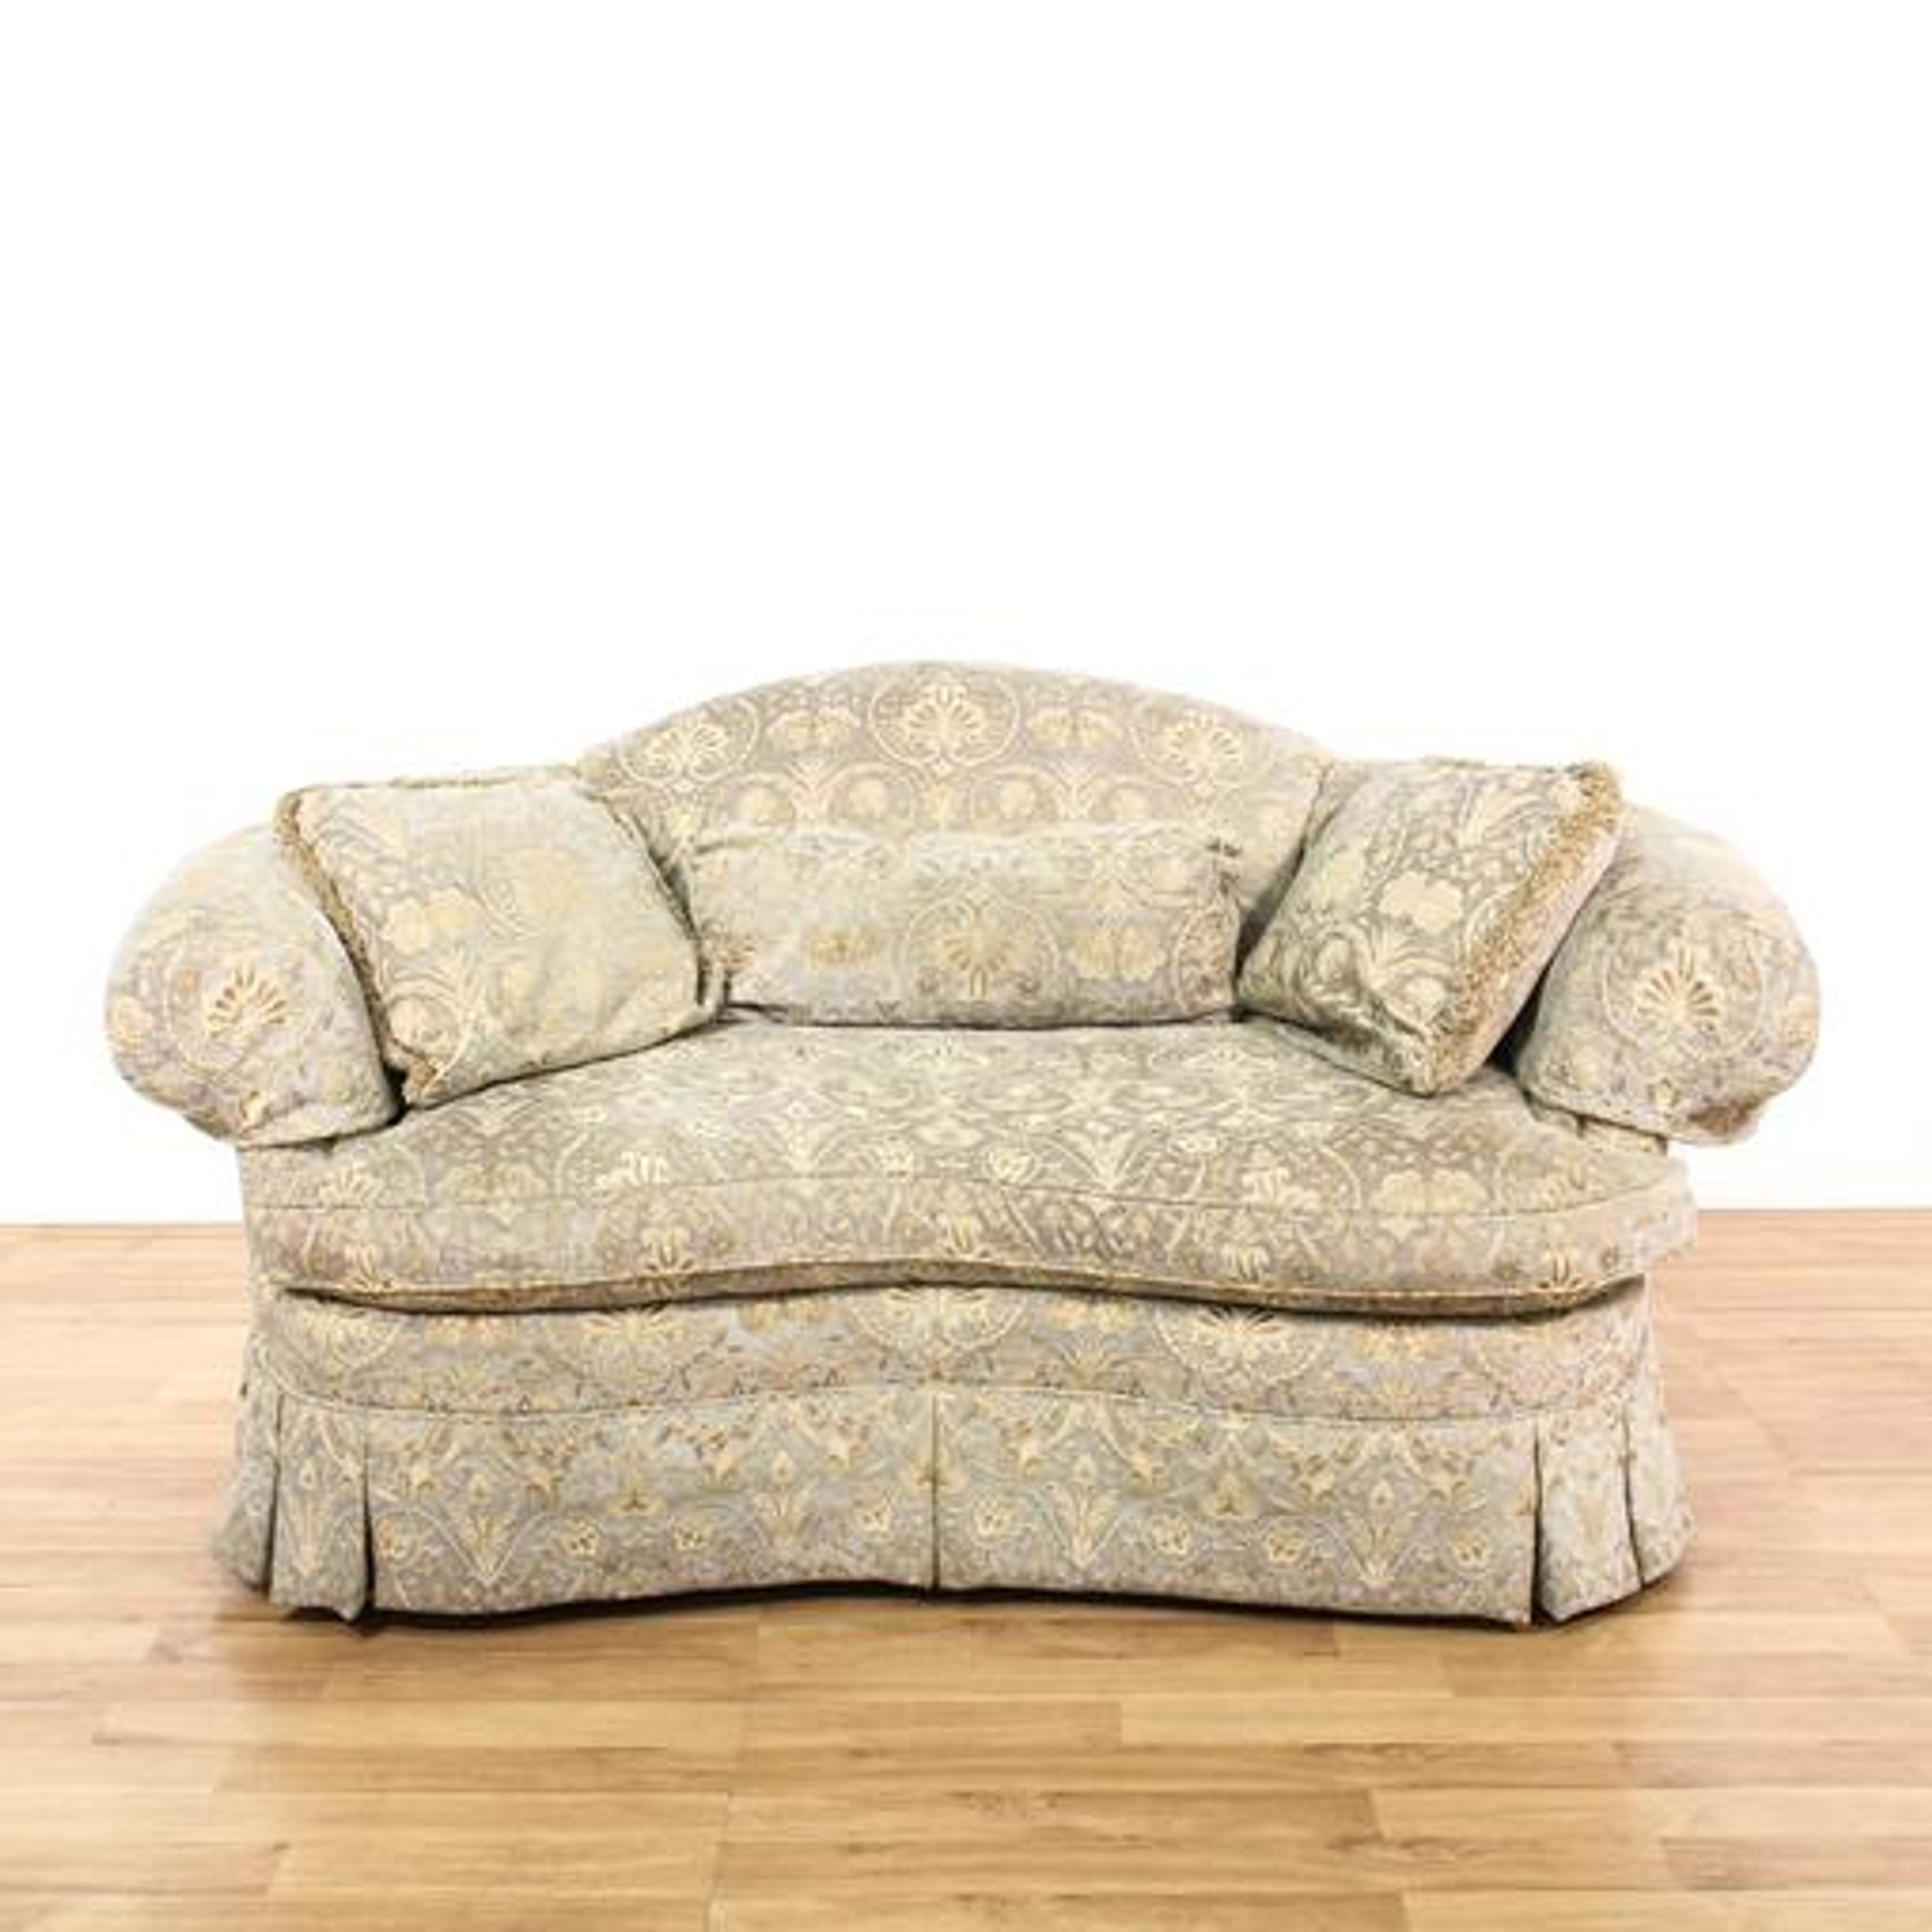 Kidney Shaped Gray Floral Loveseat Sofa 2 Loveseat Vintage Furniture San Diego Los Angeles